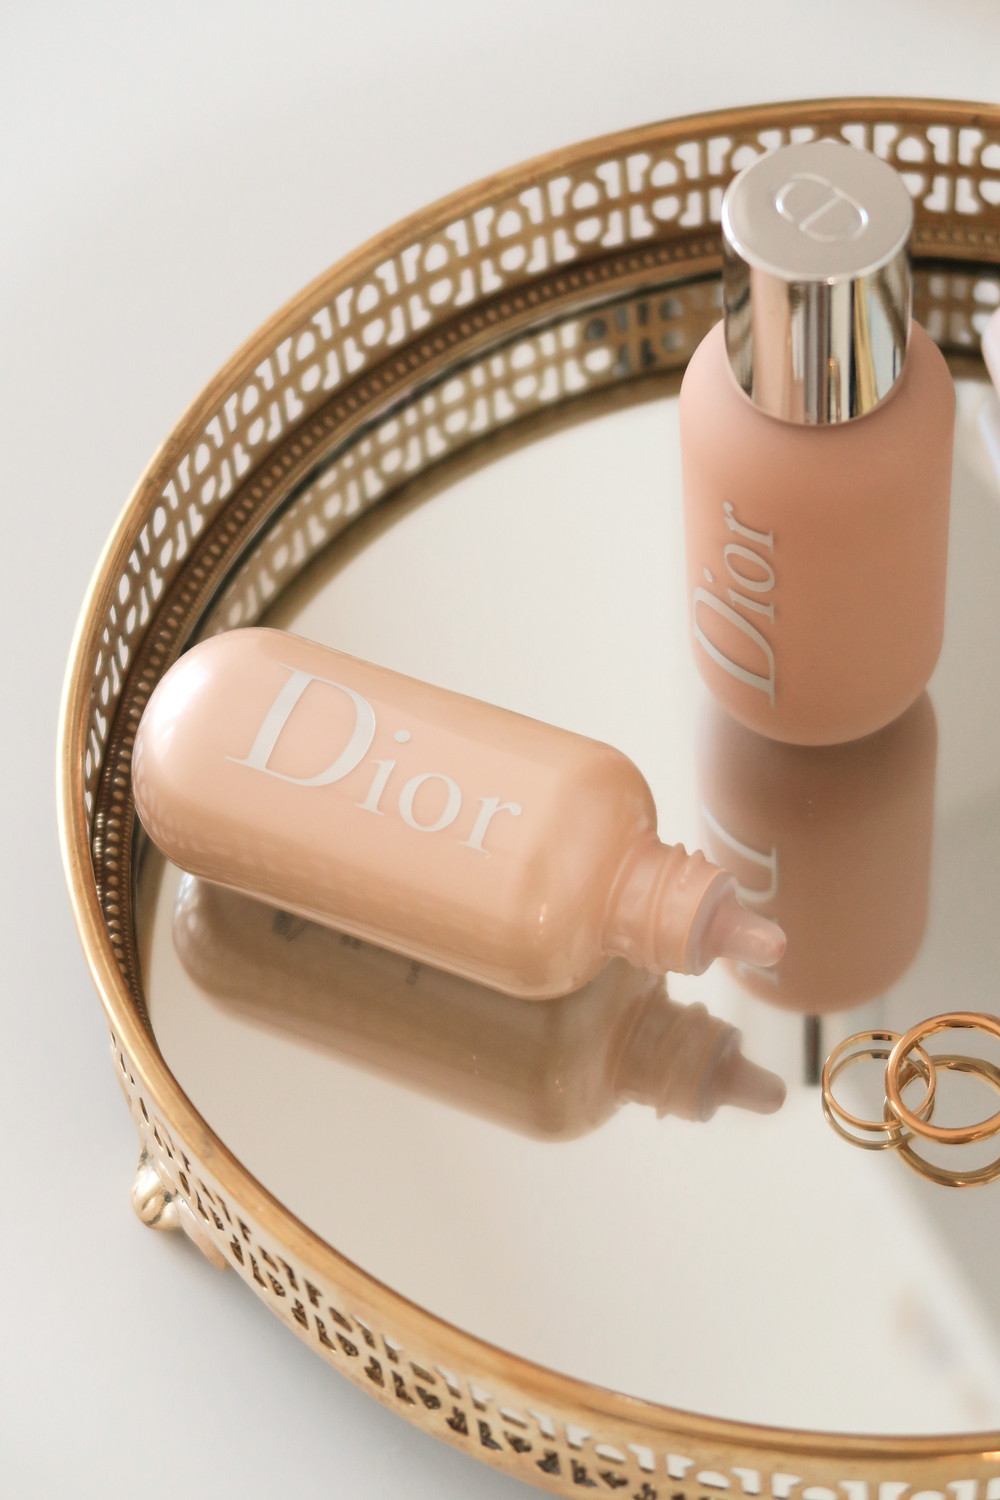 dior backstage face & body glow review